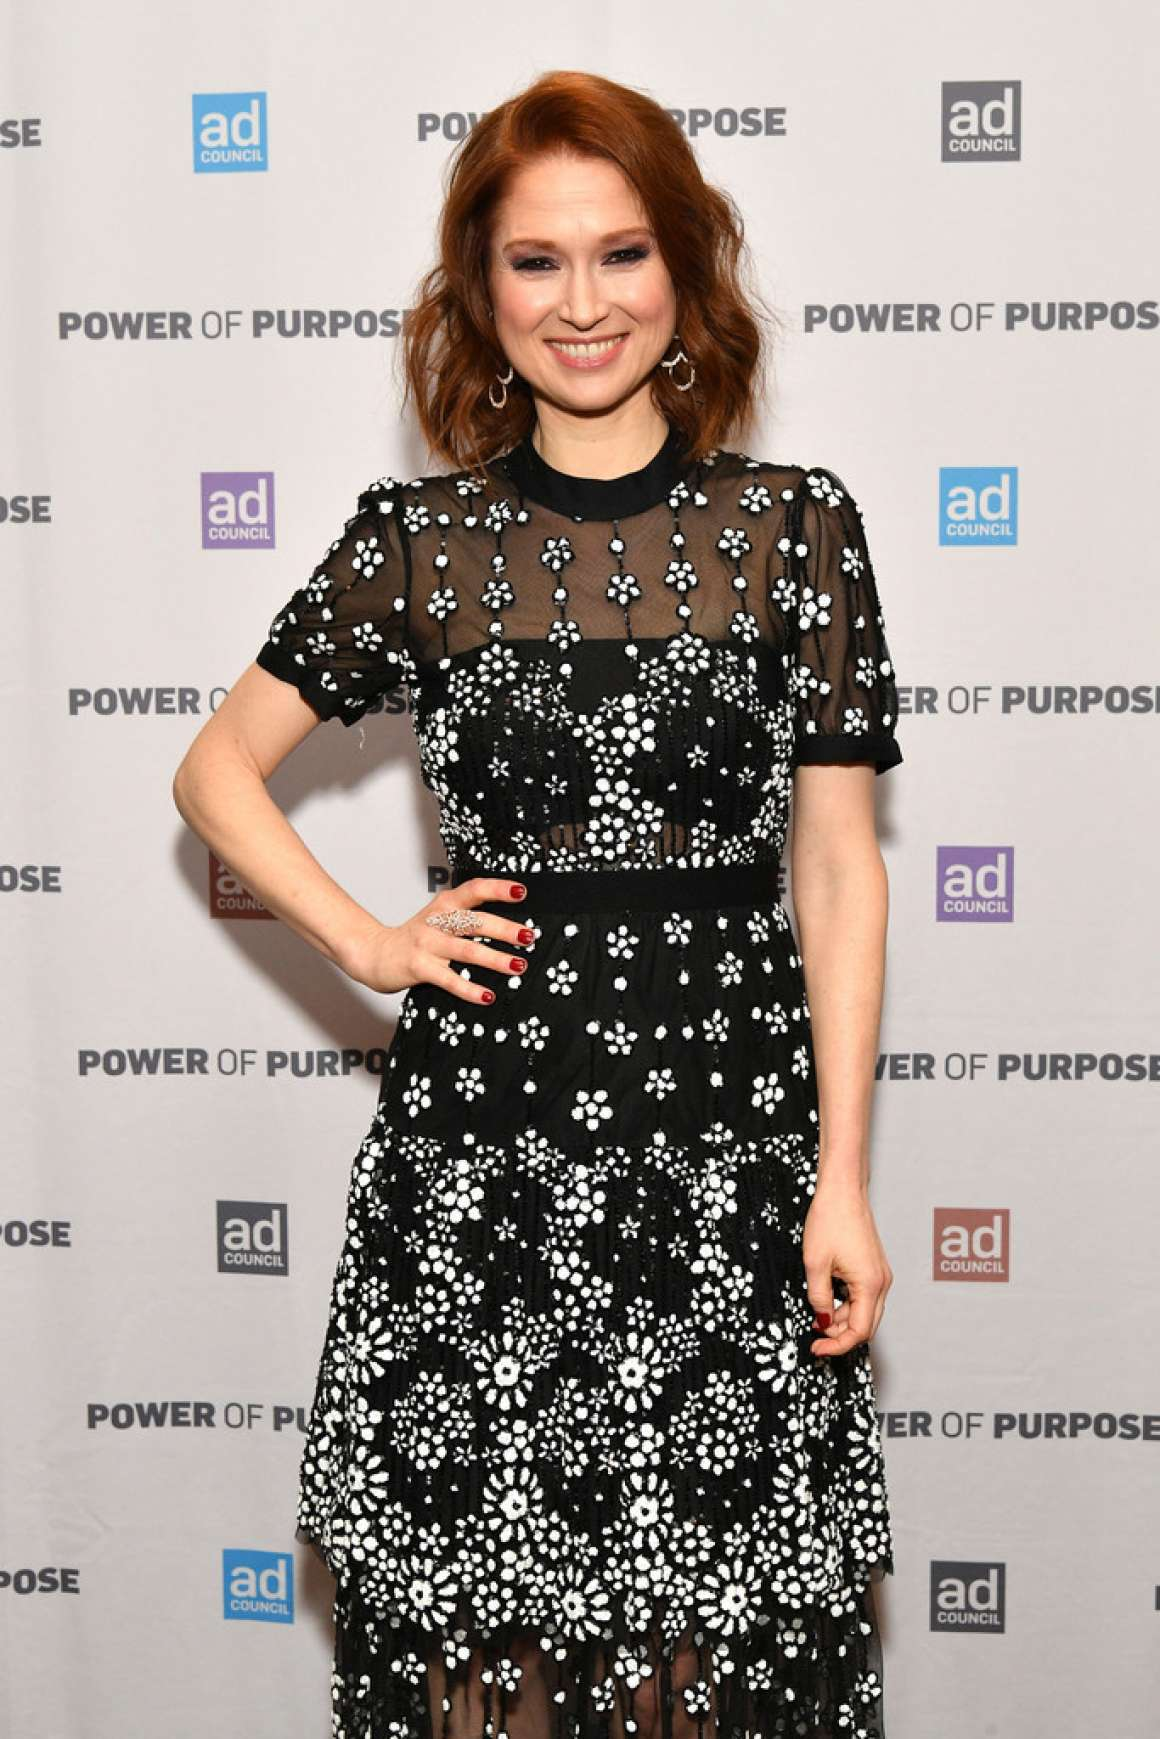 Ellie Kemper - 2019 Ad Council Dinner in NYC